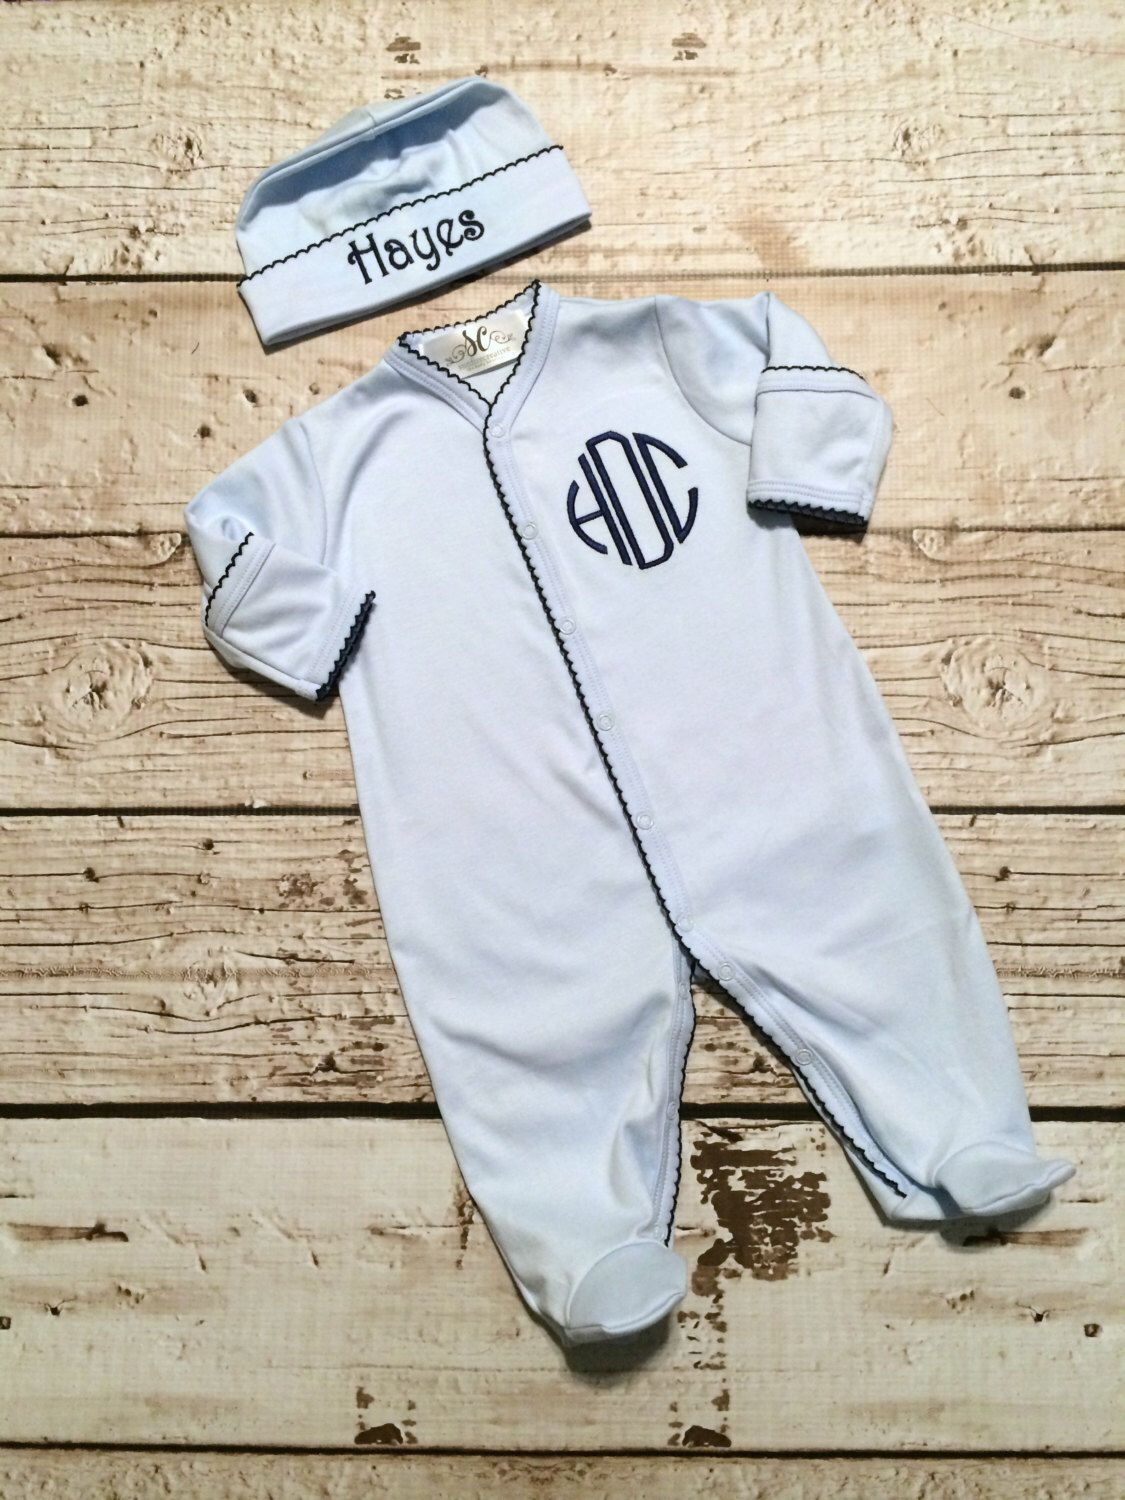 Pima Cotton Baby Clothes - Baby Boy Coming Home Outfit - Footed Sleeper -  Personalized Children's Clothes - Pima Cotton Baby Clothes - Baby Boy Coming Home Outfit - Footed